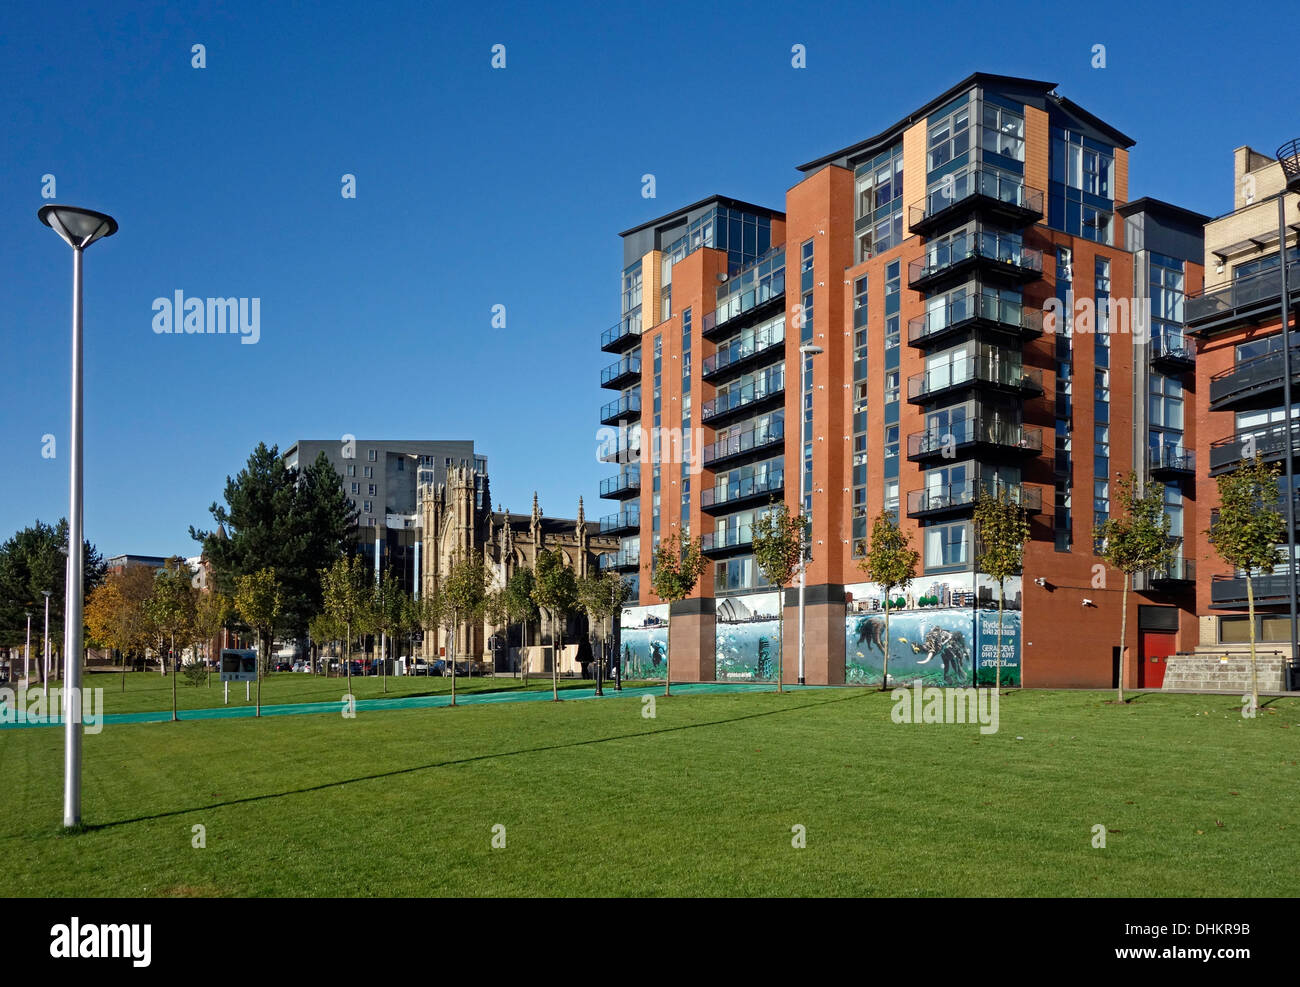 Customs House Quay Gardens Public Realm improvements scheme along River Clyde in Central Glasgow Scotland - Stock Image